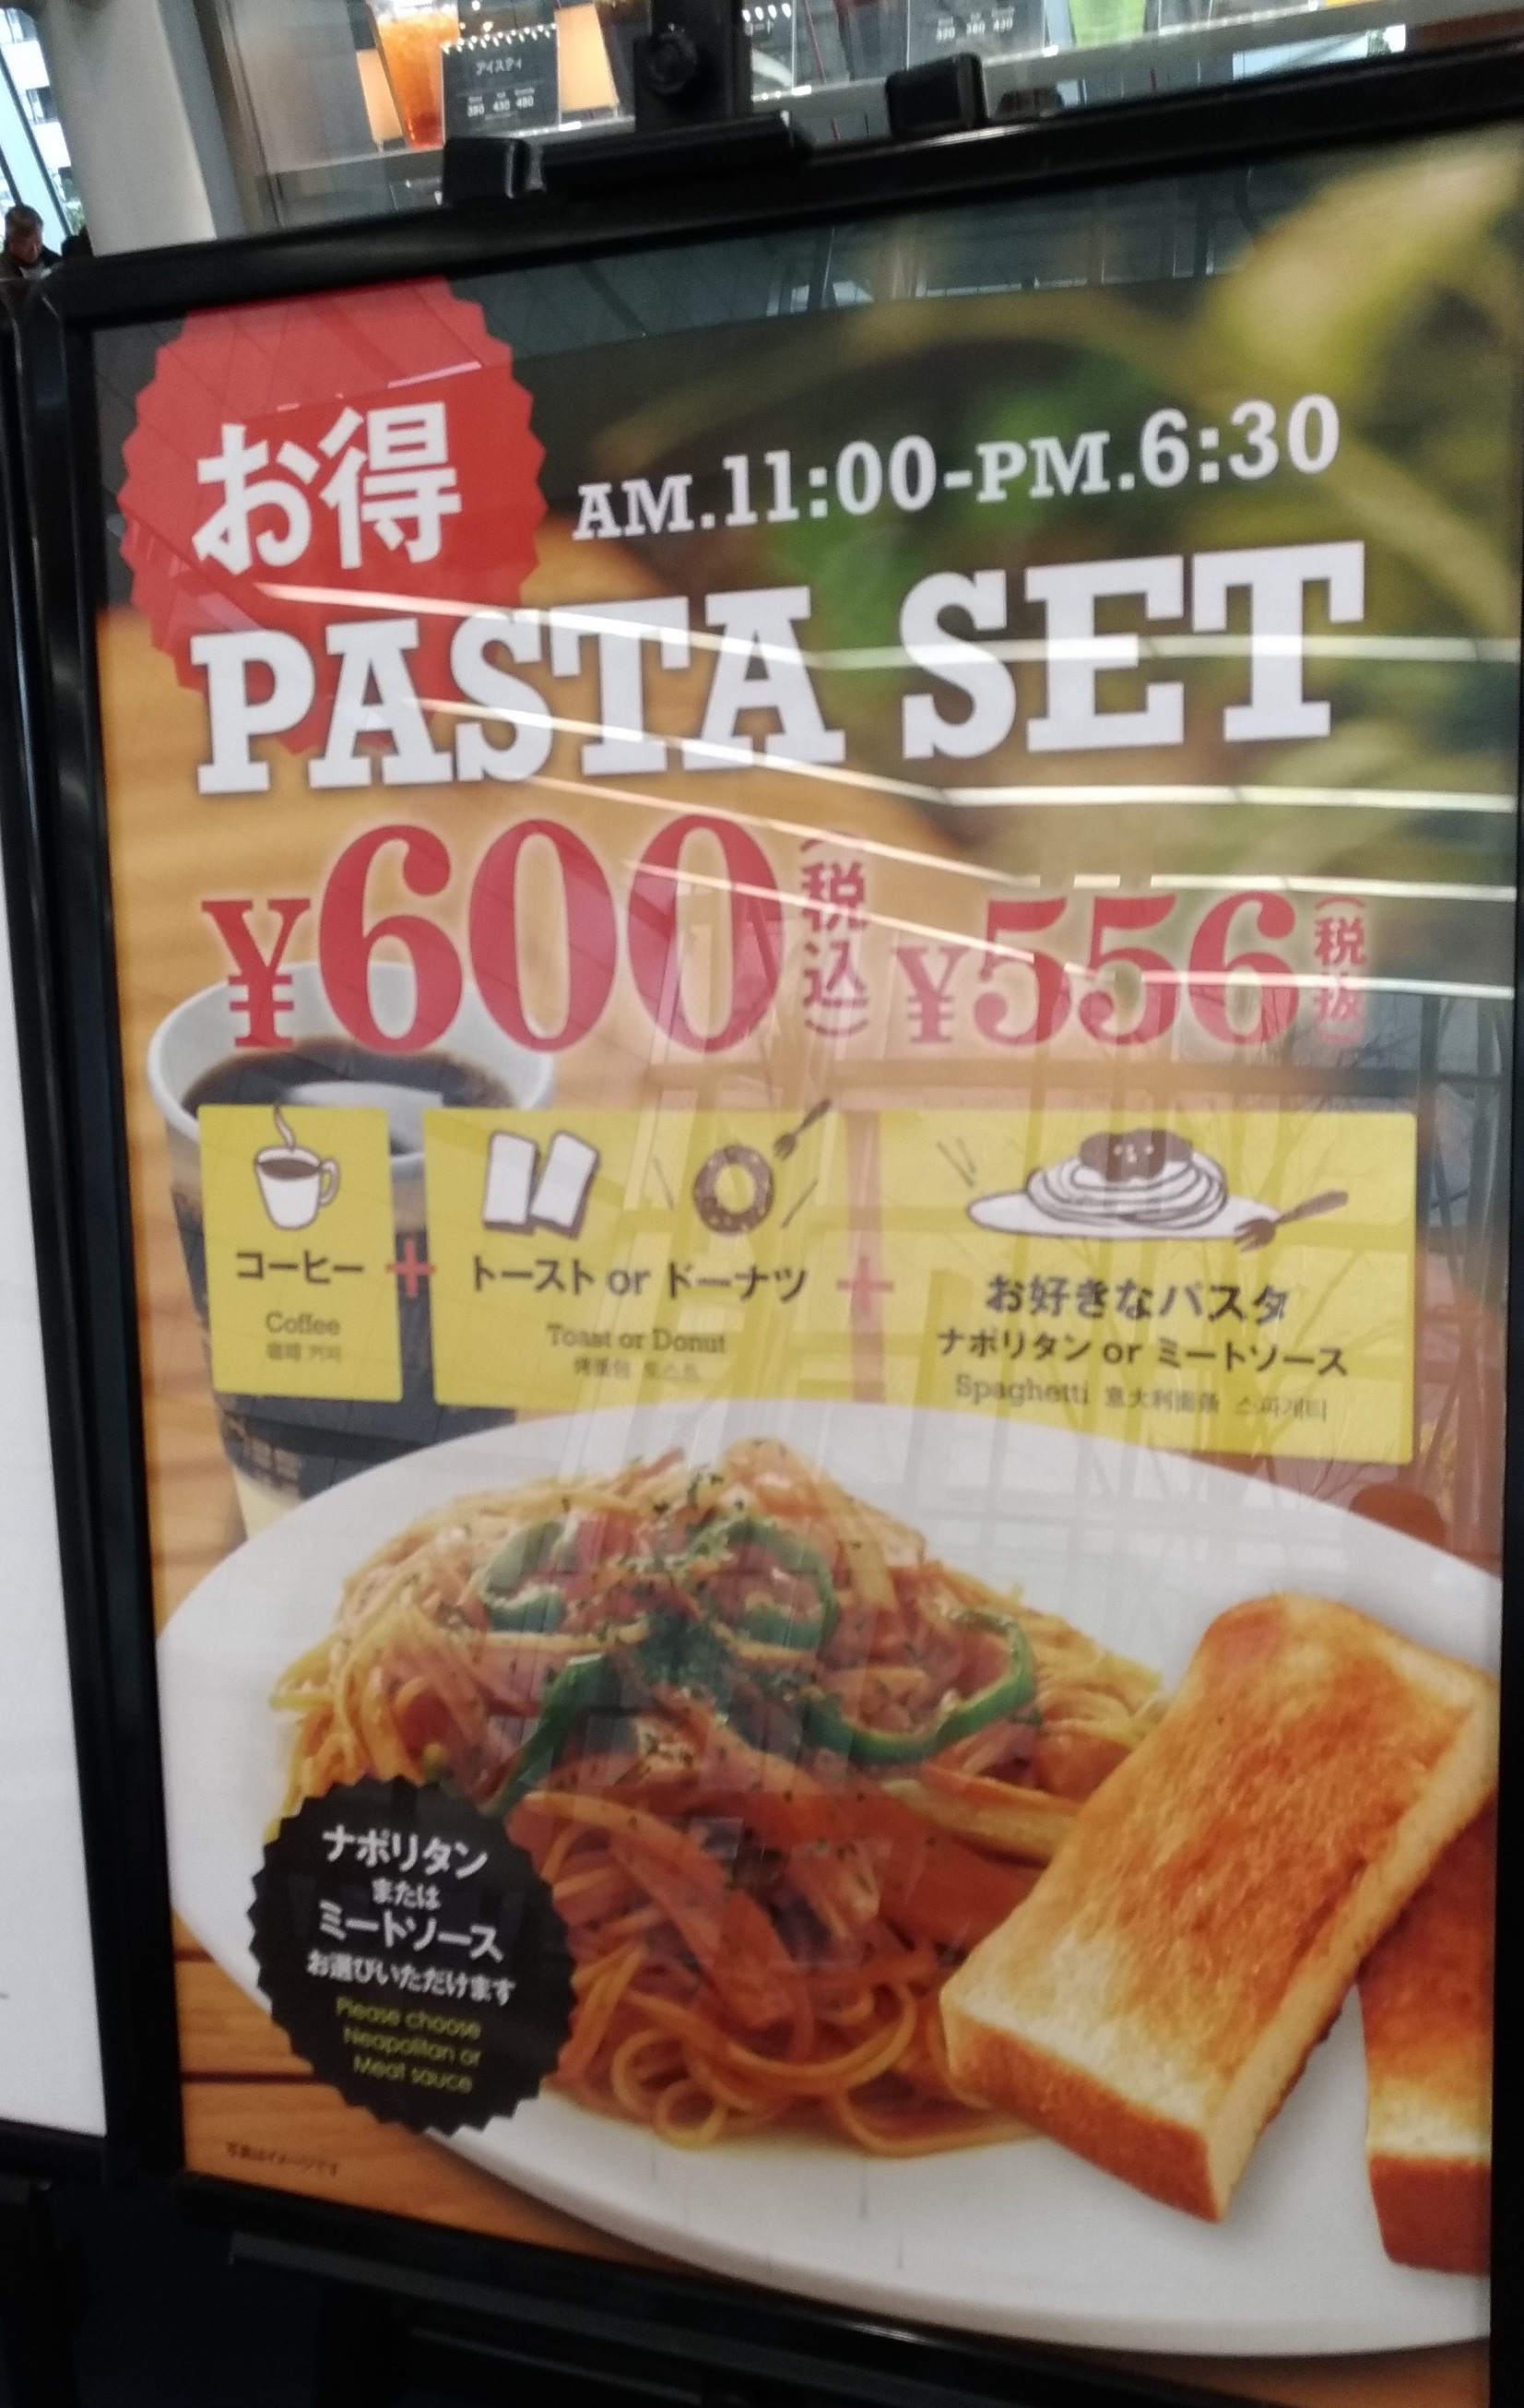 osaka_lunch_pasta_set_600en.jpg